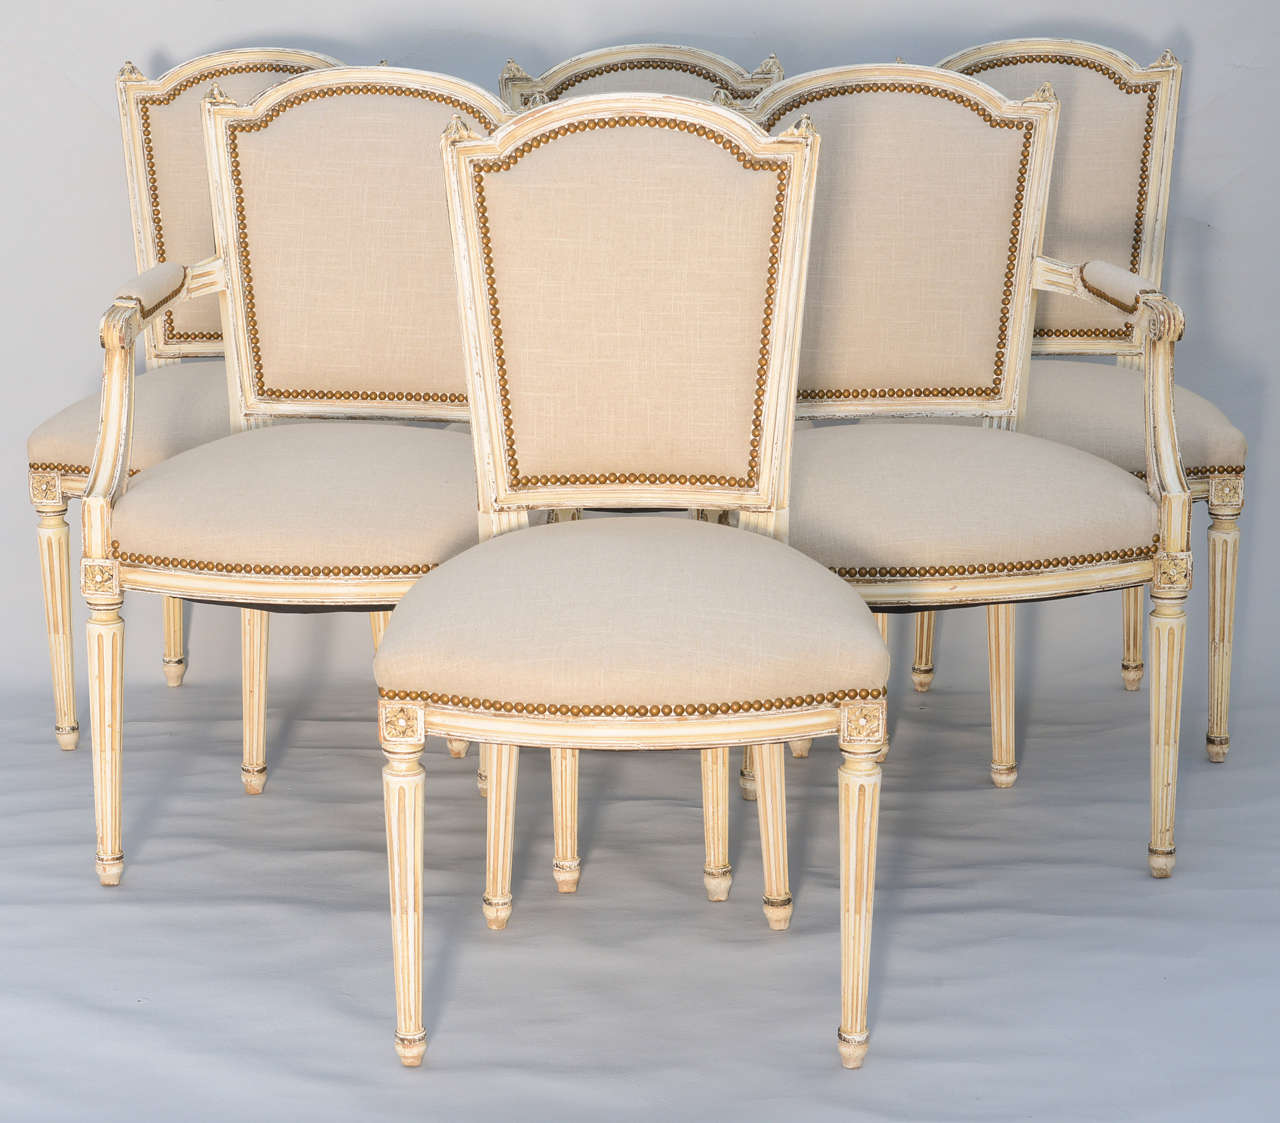 Set of Six French Dining Room Louis XVI Chairs at 1stdibs : B from www.1stdibs.com size 1280 x 1123 jpeg 130kB